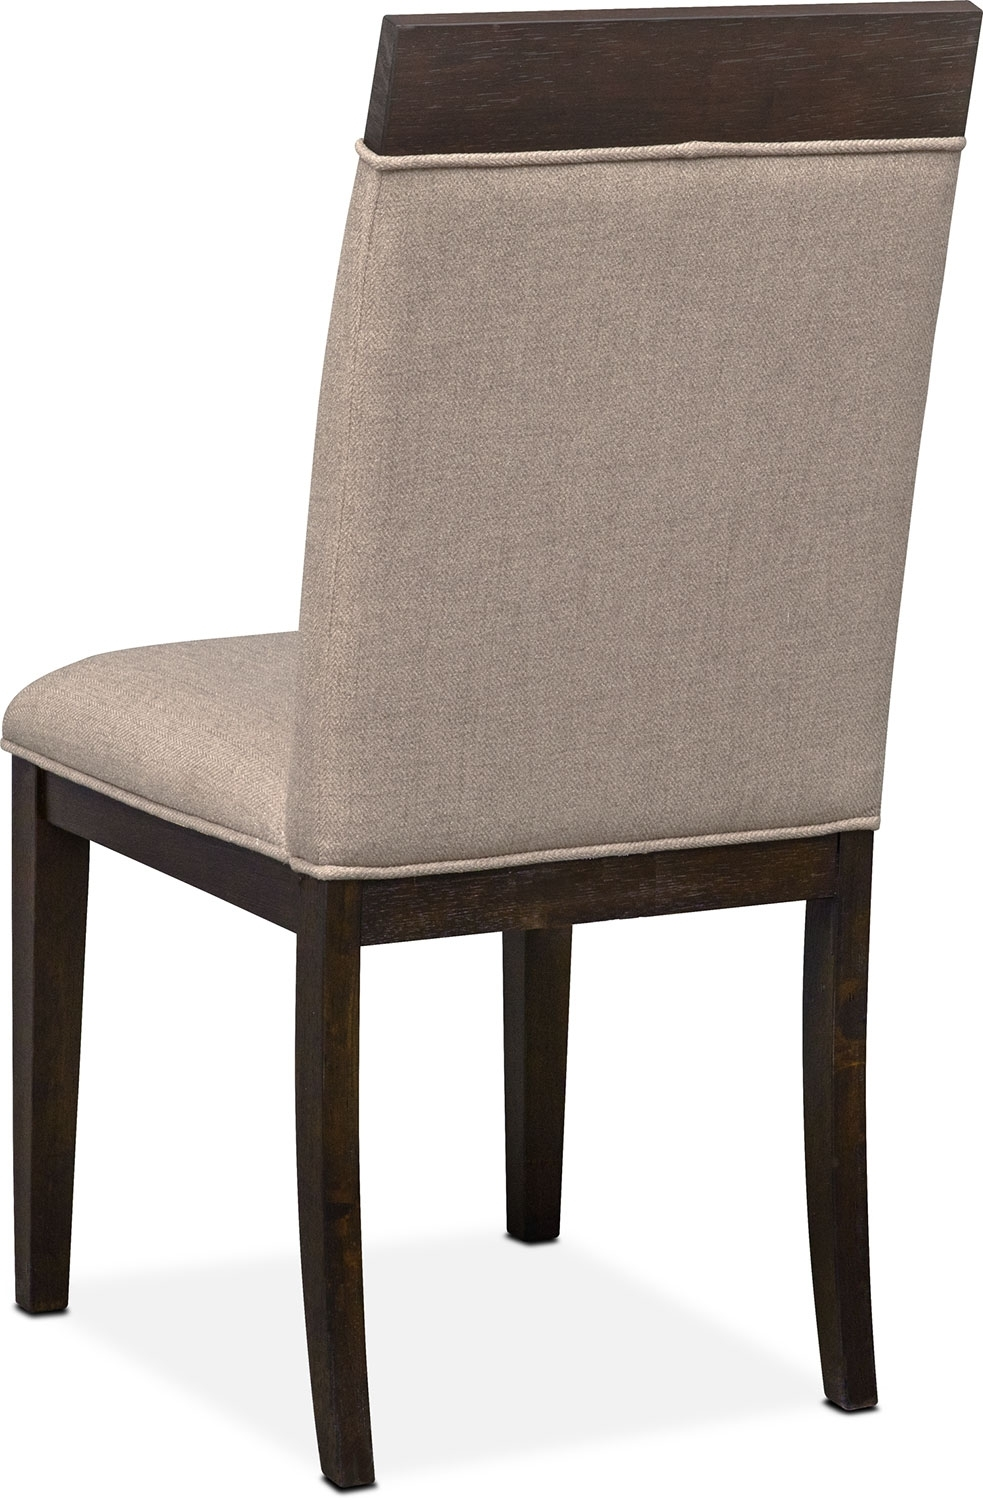 Gavin Side Chair – Brownstone | Value City Furniture And Mattresses Inside Recent Gavin 7 Piece Dining Sets With Clint Side Chairs (Image 7 of 20)